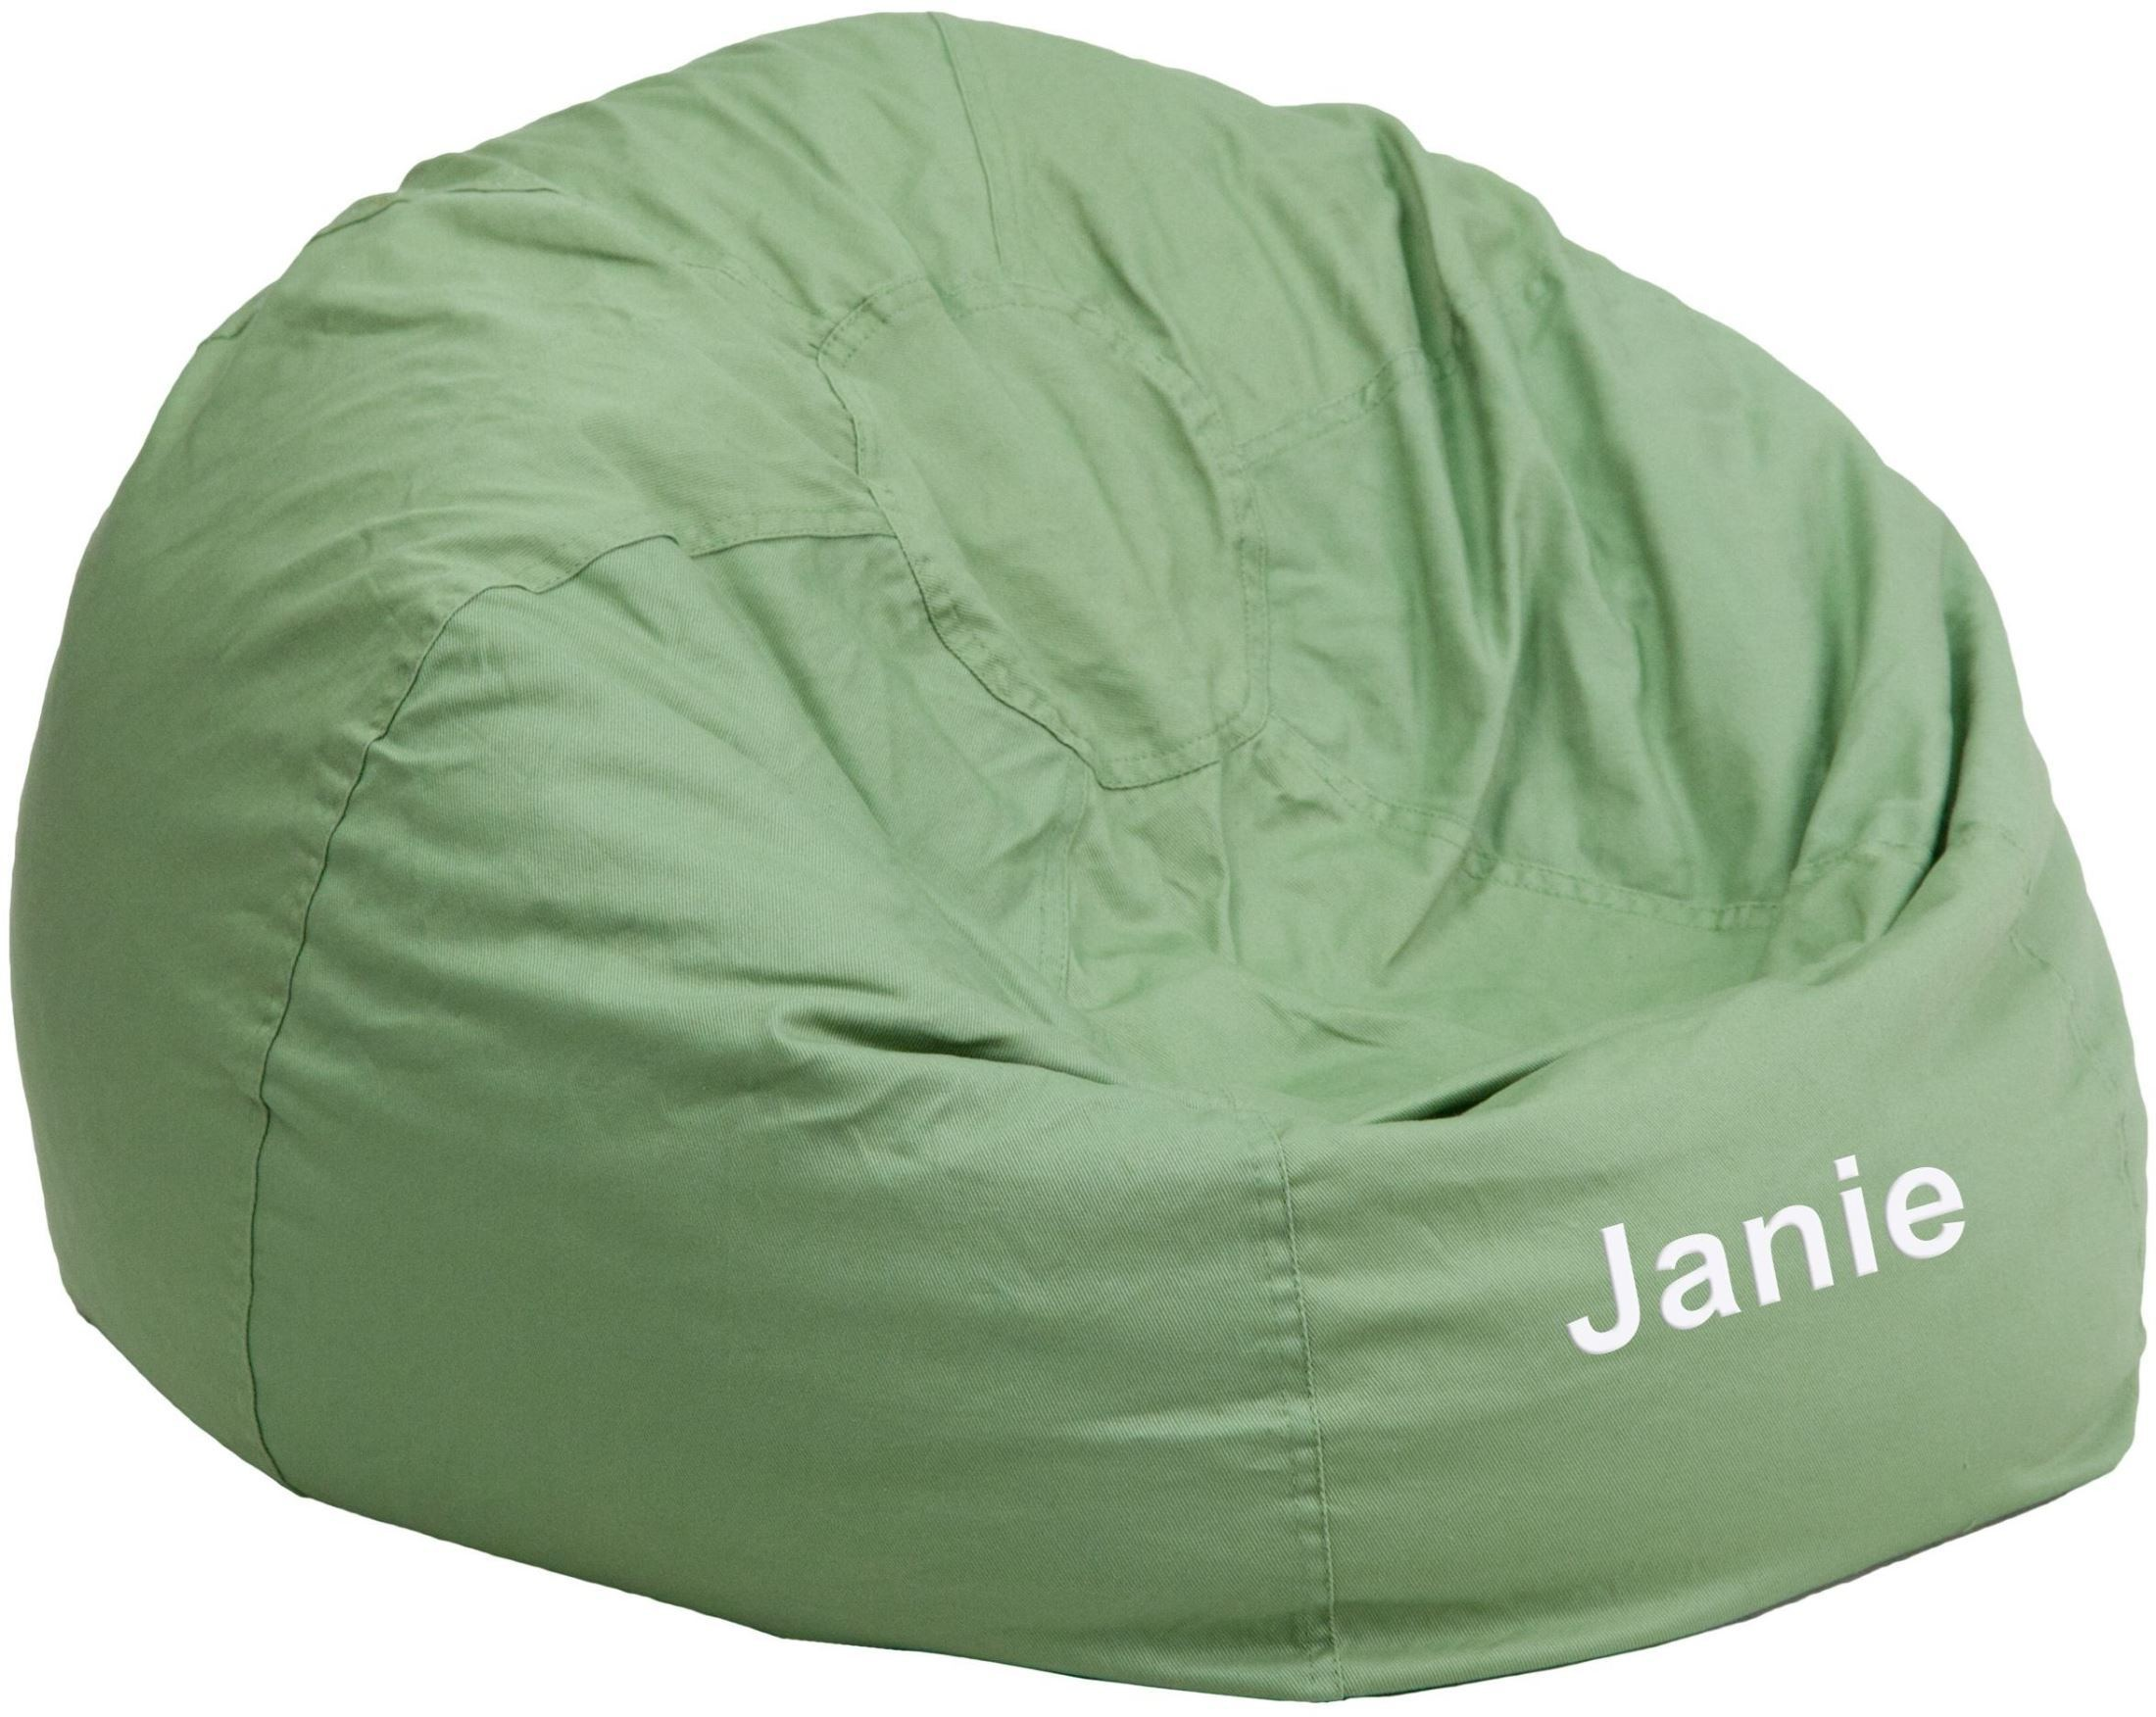 child bean bag chair personalized waterproof garden covers 32110 small solid green kids